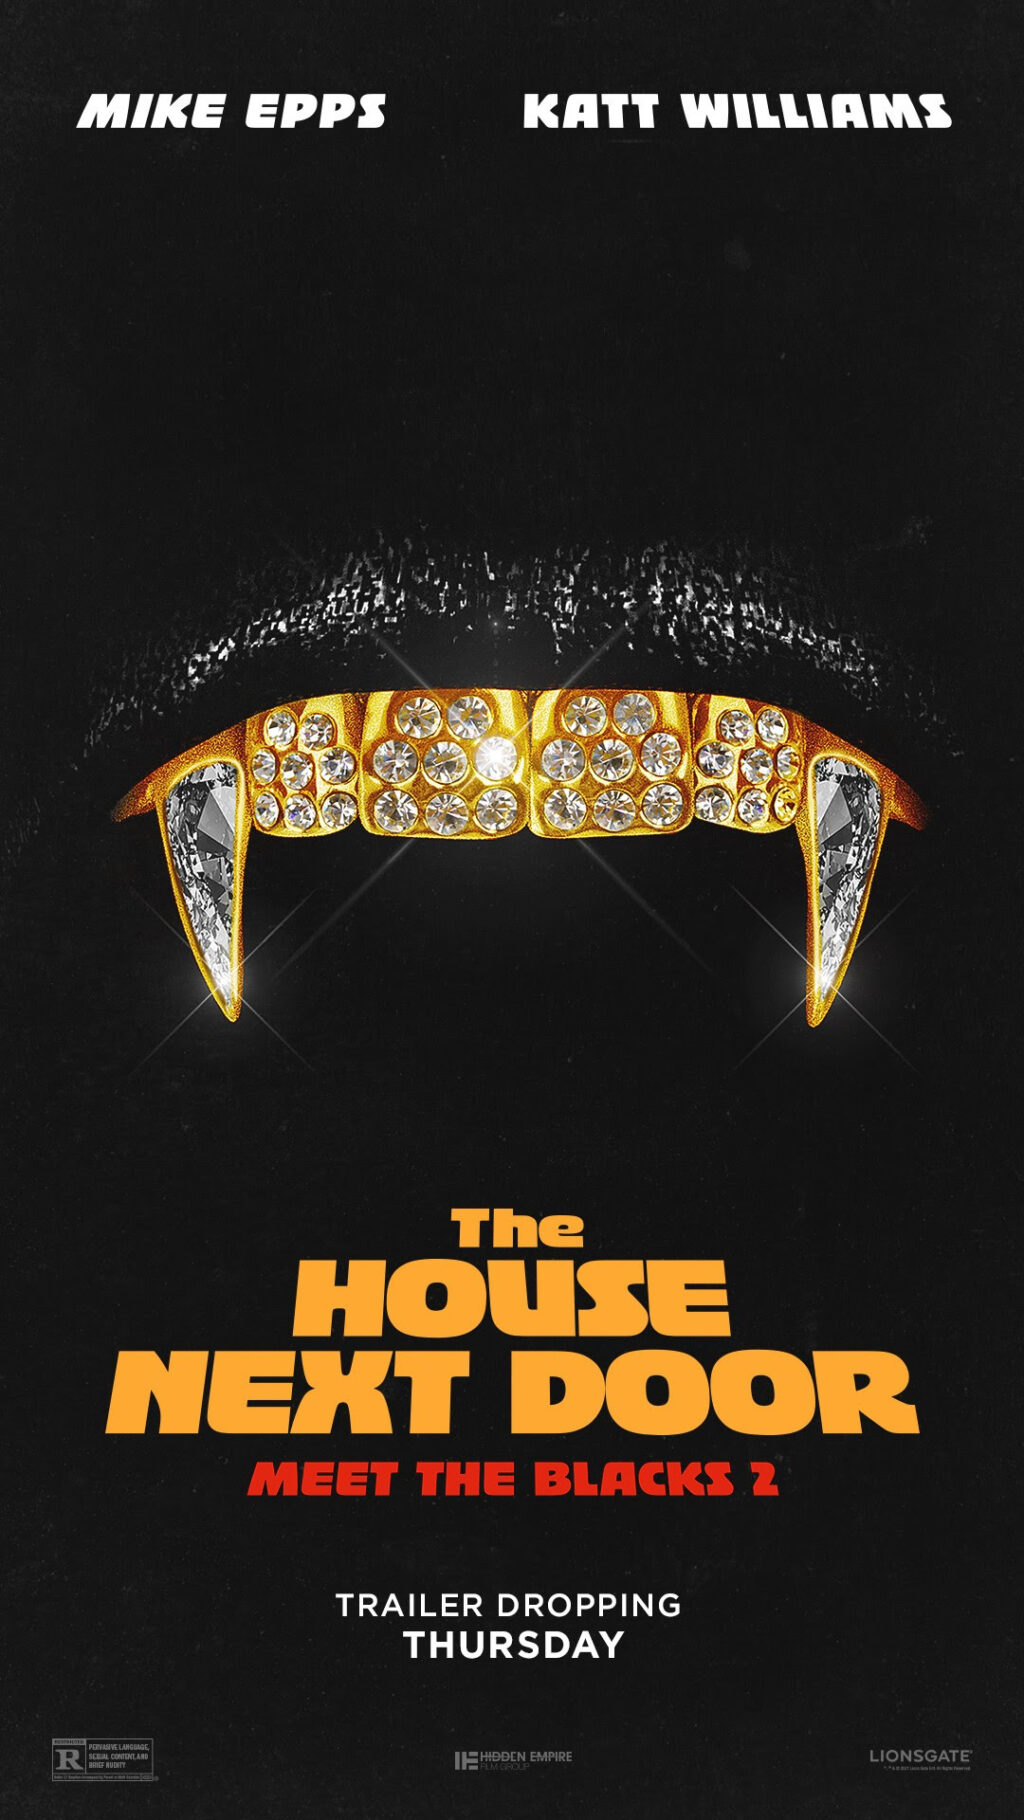 The House Next Door Poster 1024x1820 - New Poster Suggests MEET THE BLACKS 2 Will Have a Vampiric Twist